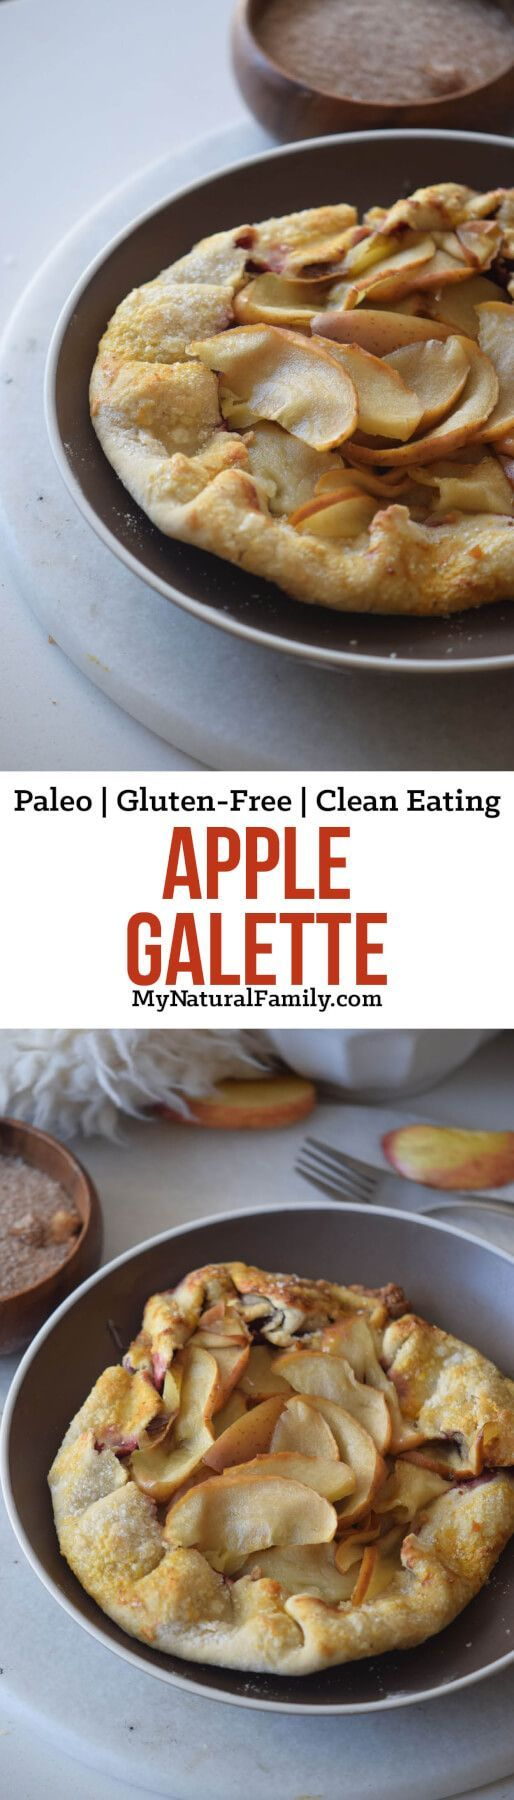 This Paleo apple galette recipe is simple, rustic and delicious. I love the way the apples turn out and the crust is so good. This is basically the healthiest and easiest apple recipe ever!